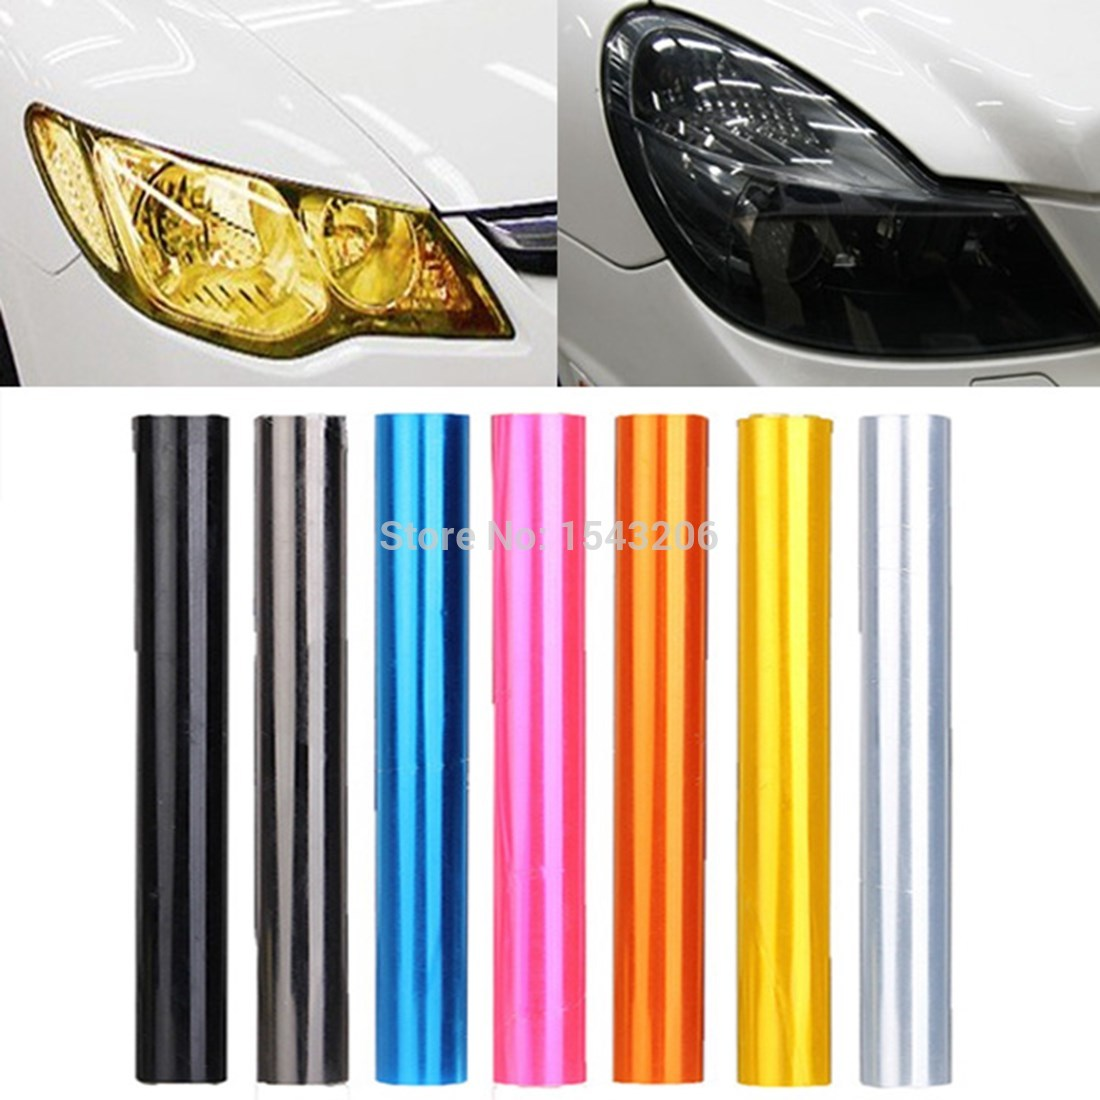 30cm x 120cm 7-Color Auto Car Tint Headlight Taillight Fog Light Vinyl Smoke Film Sheet Sticker Cover 12inch x 48inch